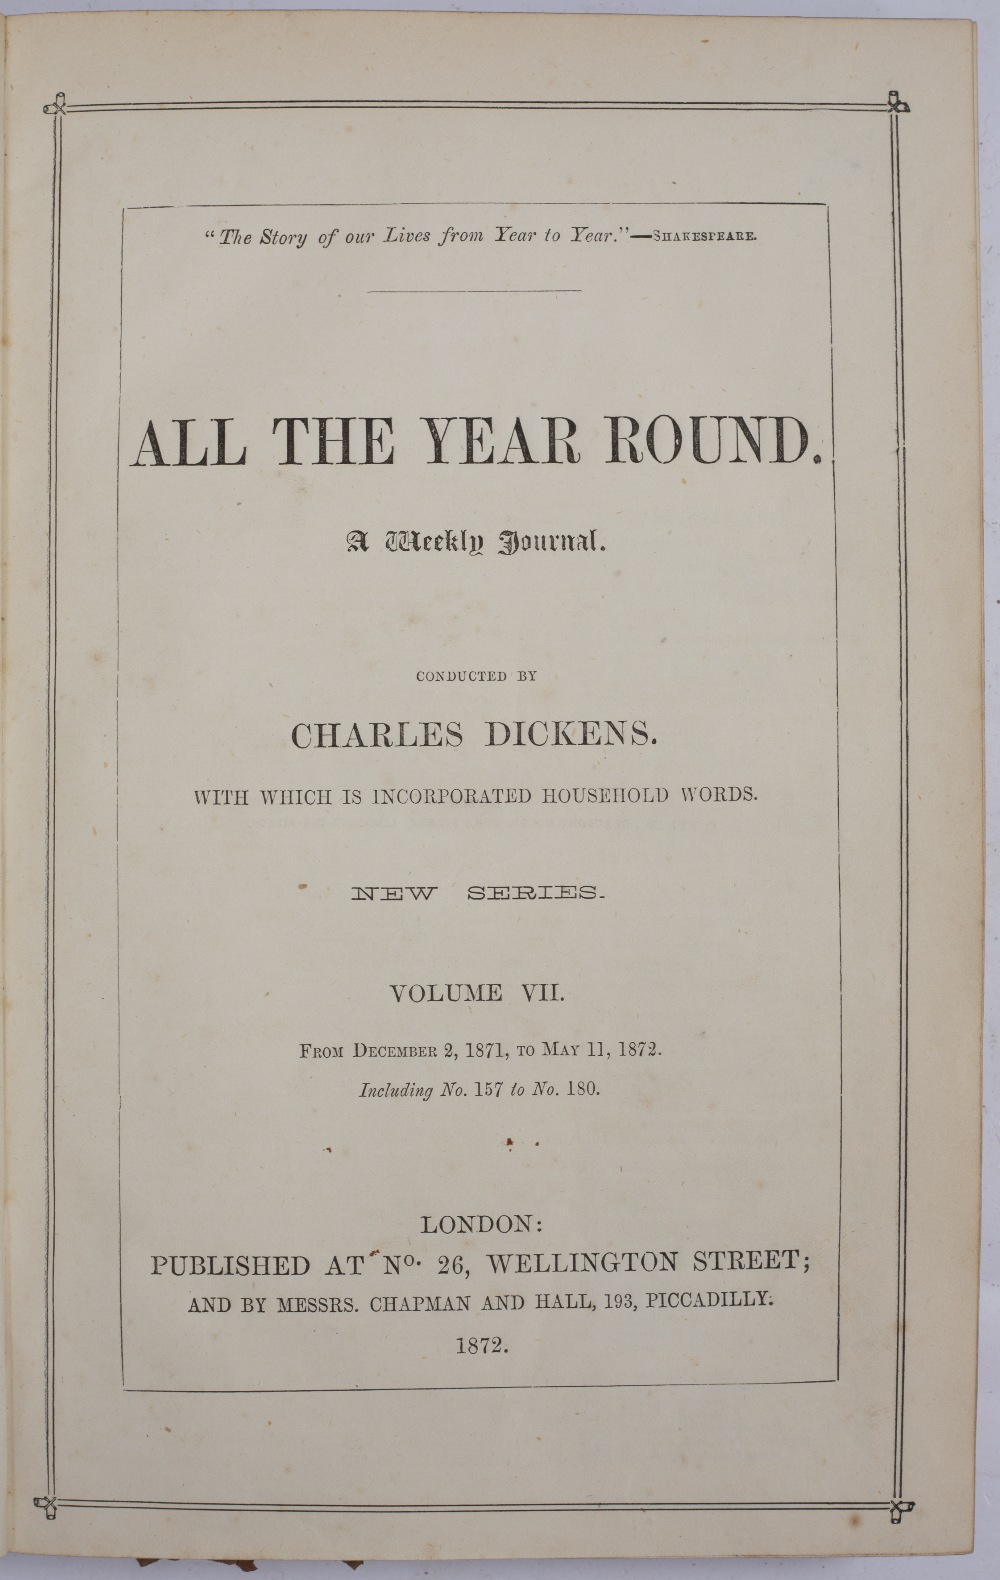 DICKENS, Charles, (Editor) 'All the Year Round' The Story of Our Lives from Year to Year. A Weekly